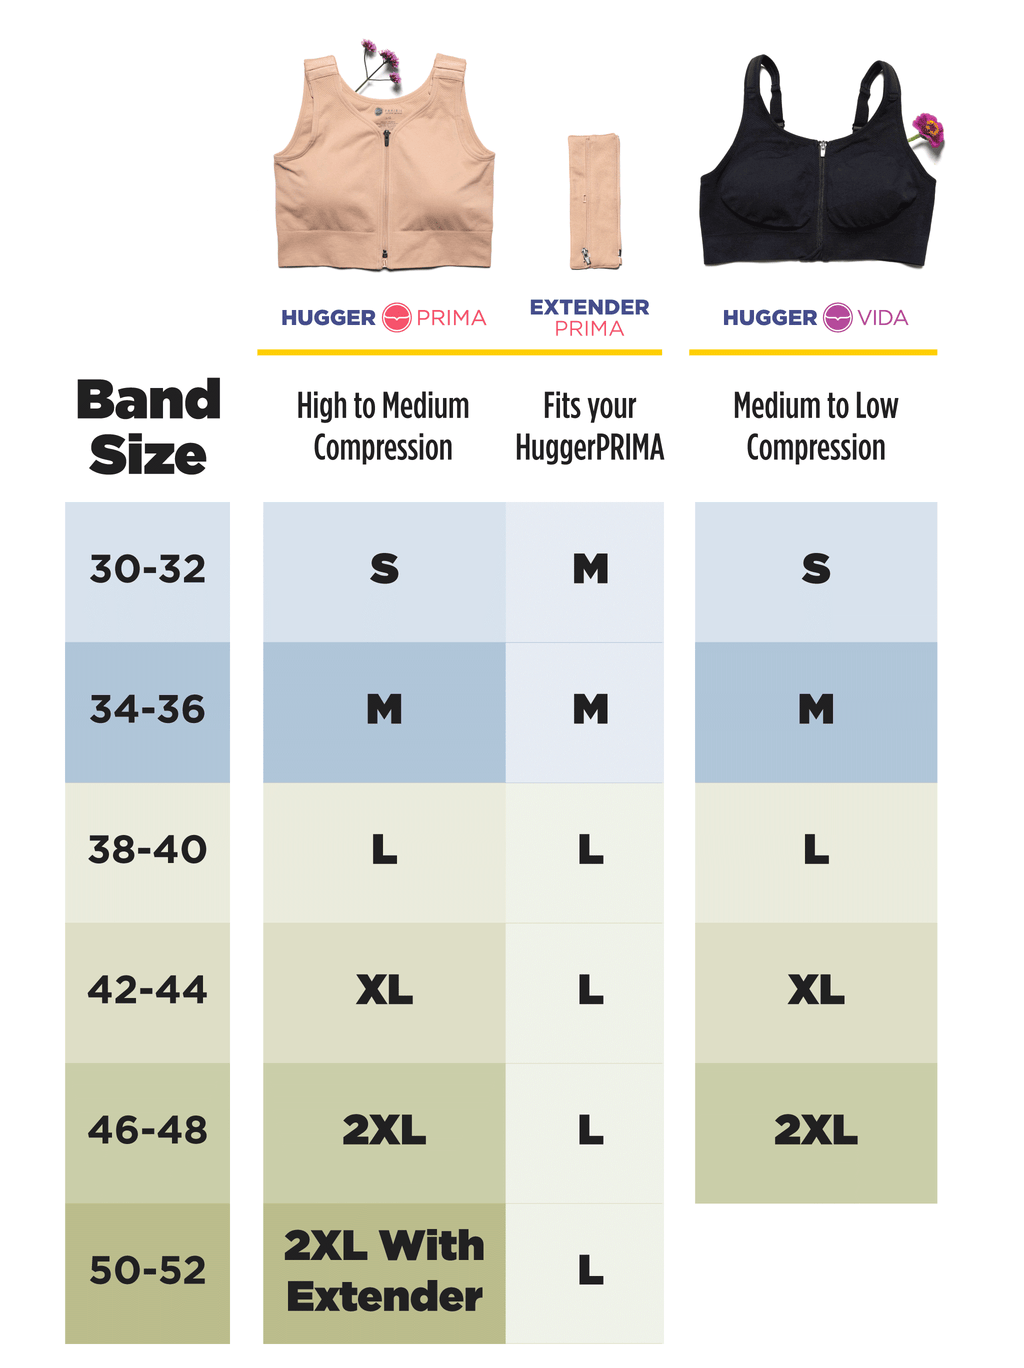 Fit chart: Find your band size and see which size Hugger or Extender will fit your best. Band size 30 to 32 is a small Hugger, while band size 42 to 44 is an XL Hugger.